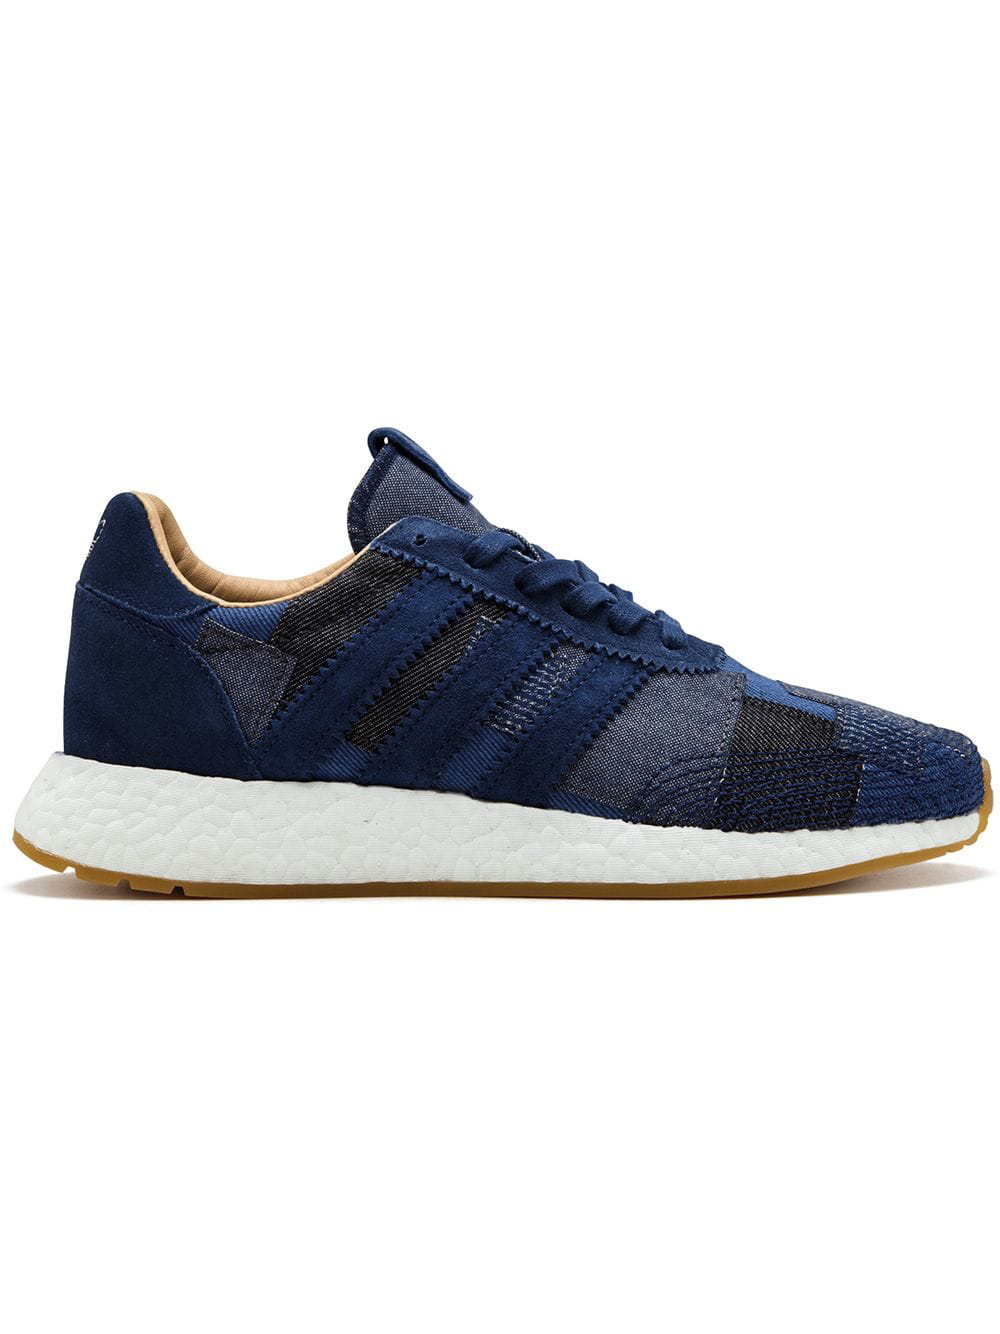 new arrivals great deals 2017 shop best sellers Adidas 'Iniki Runner S.E.' Sneakers - Blau in Blue